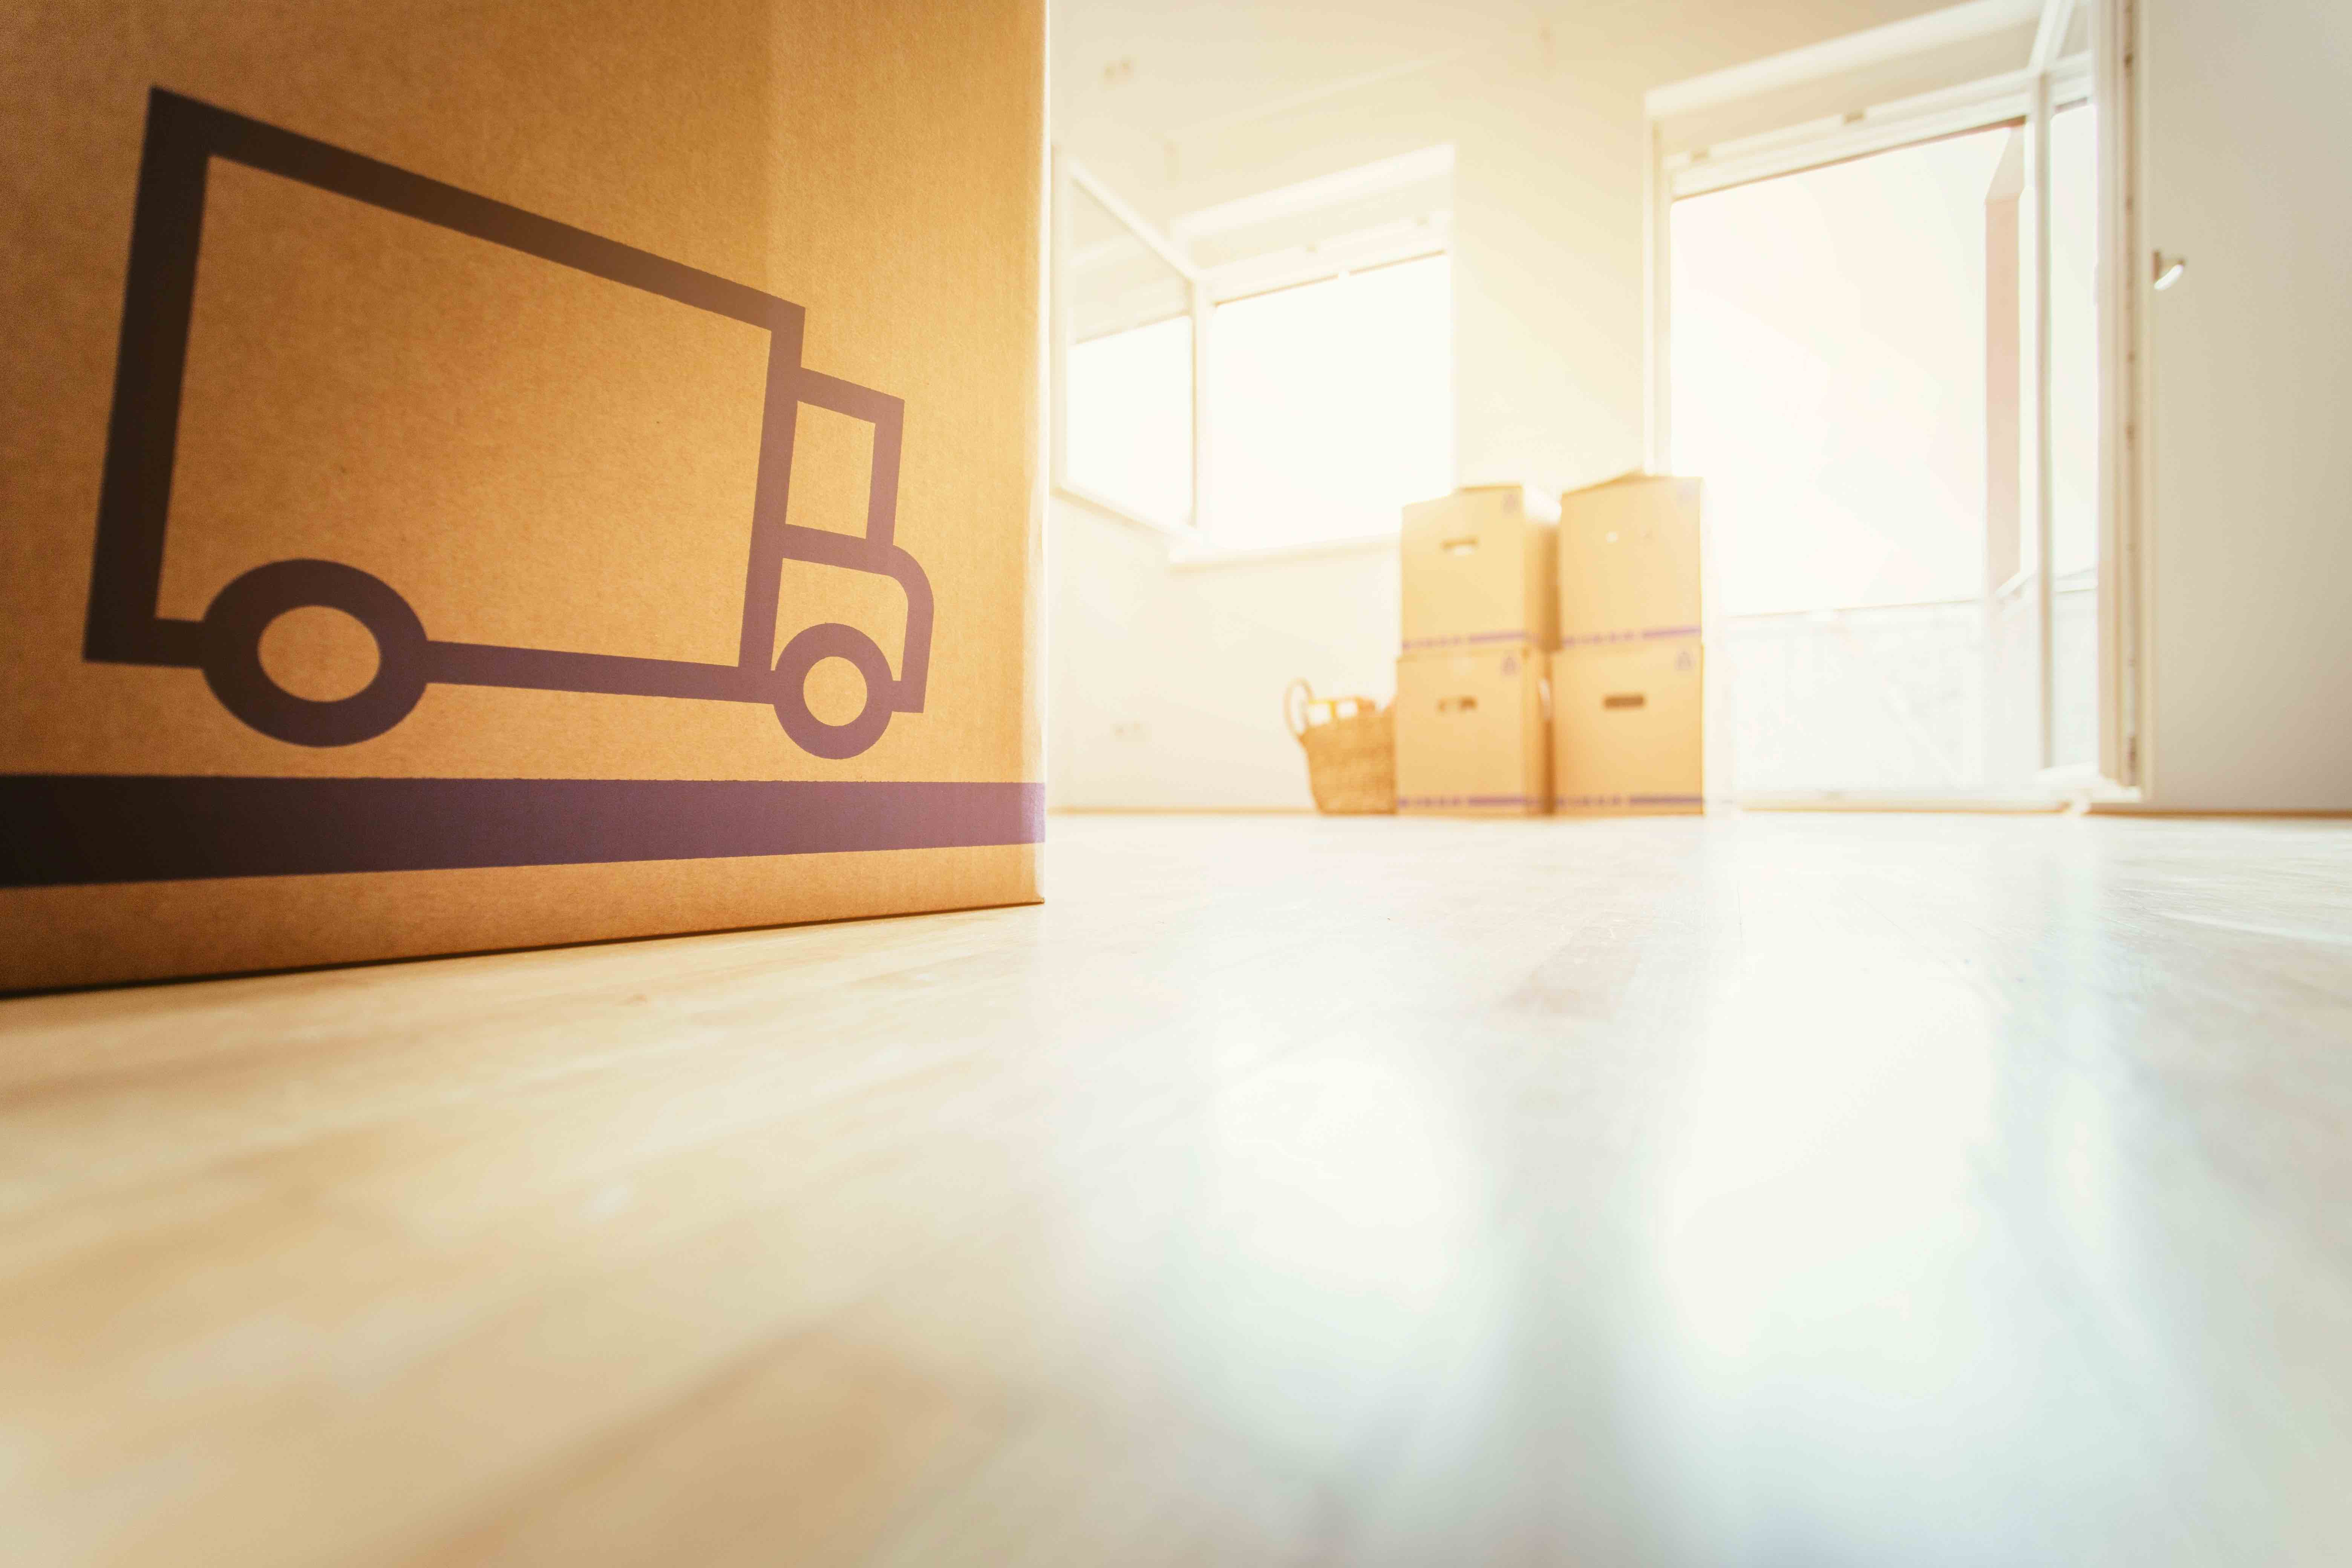 How do moving companies work?